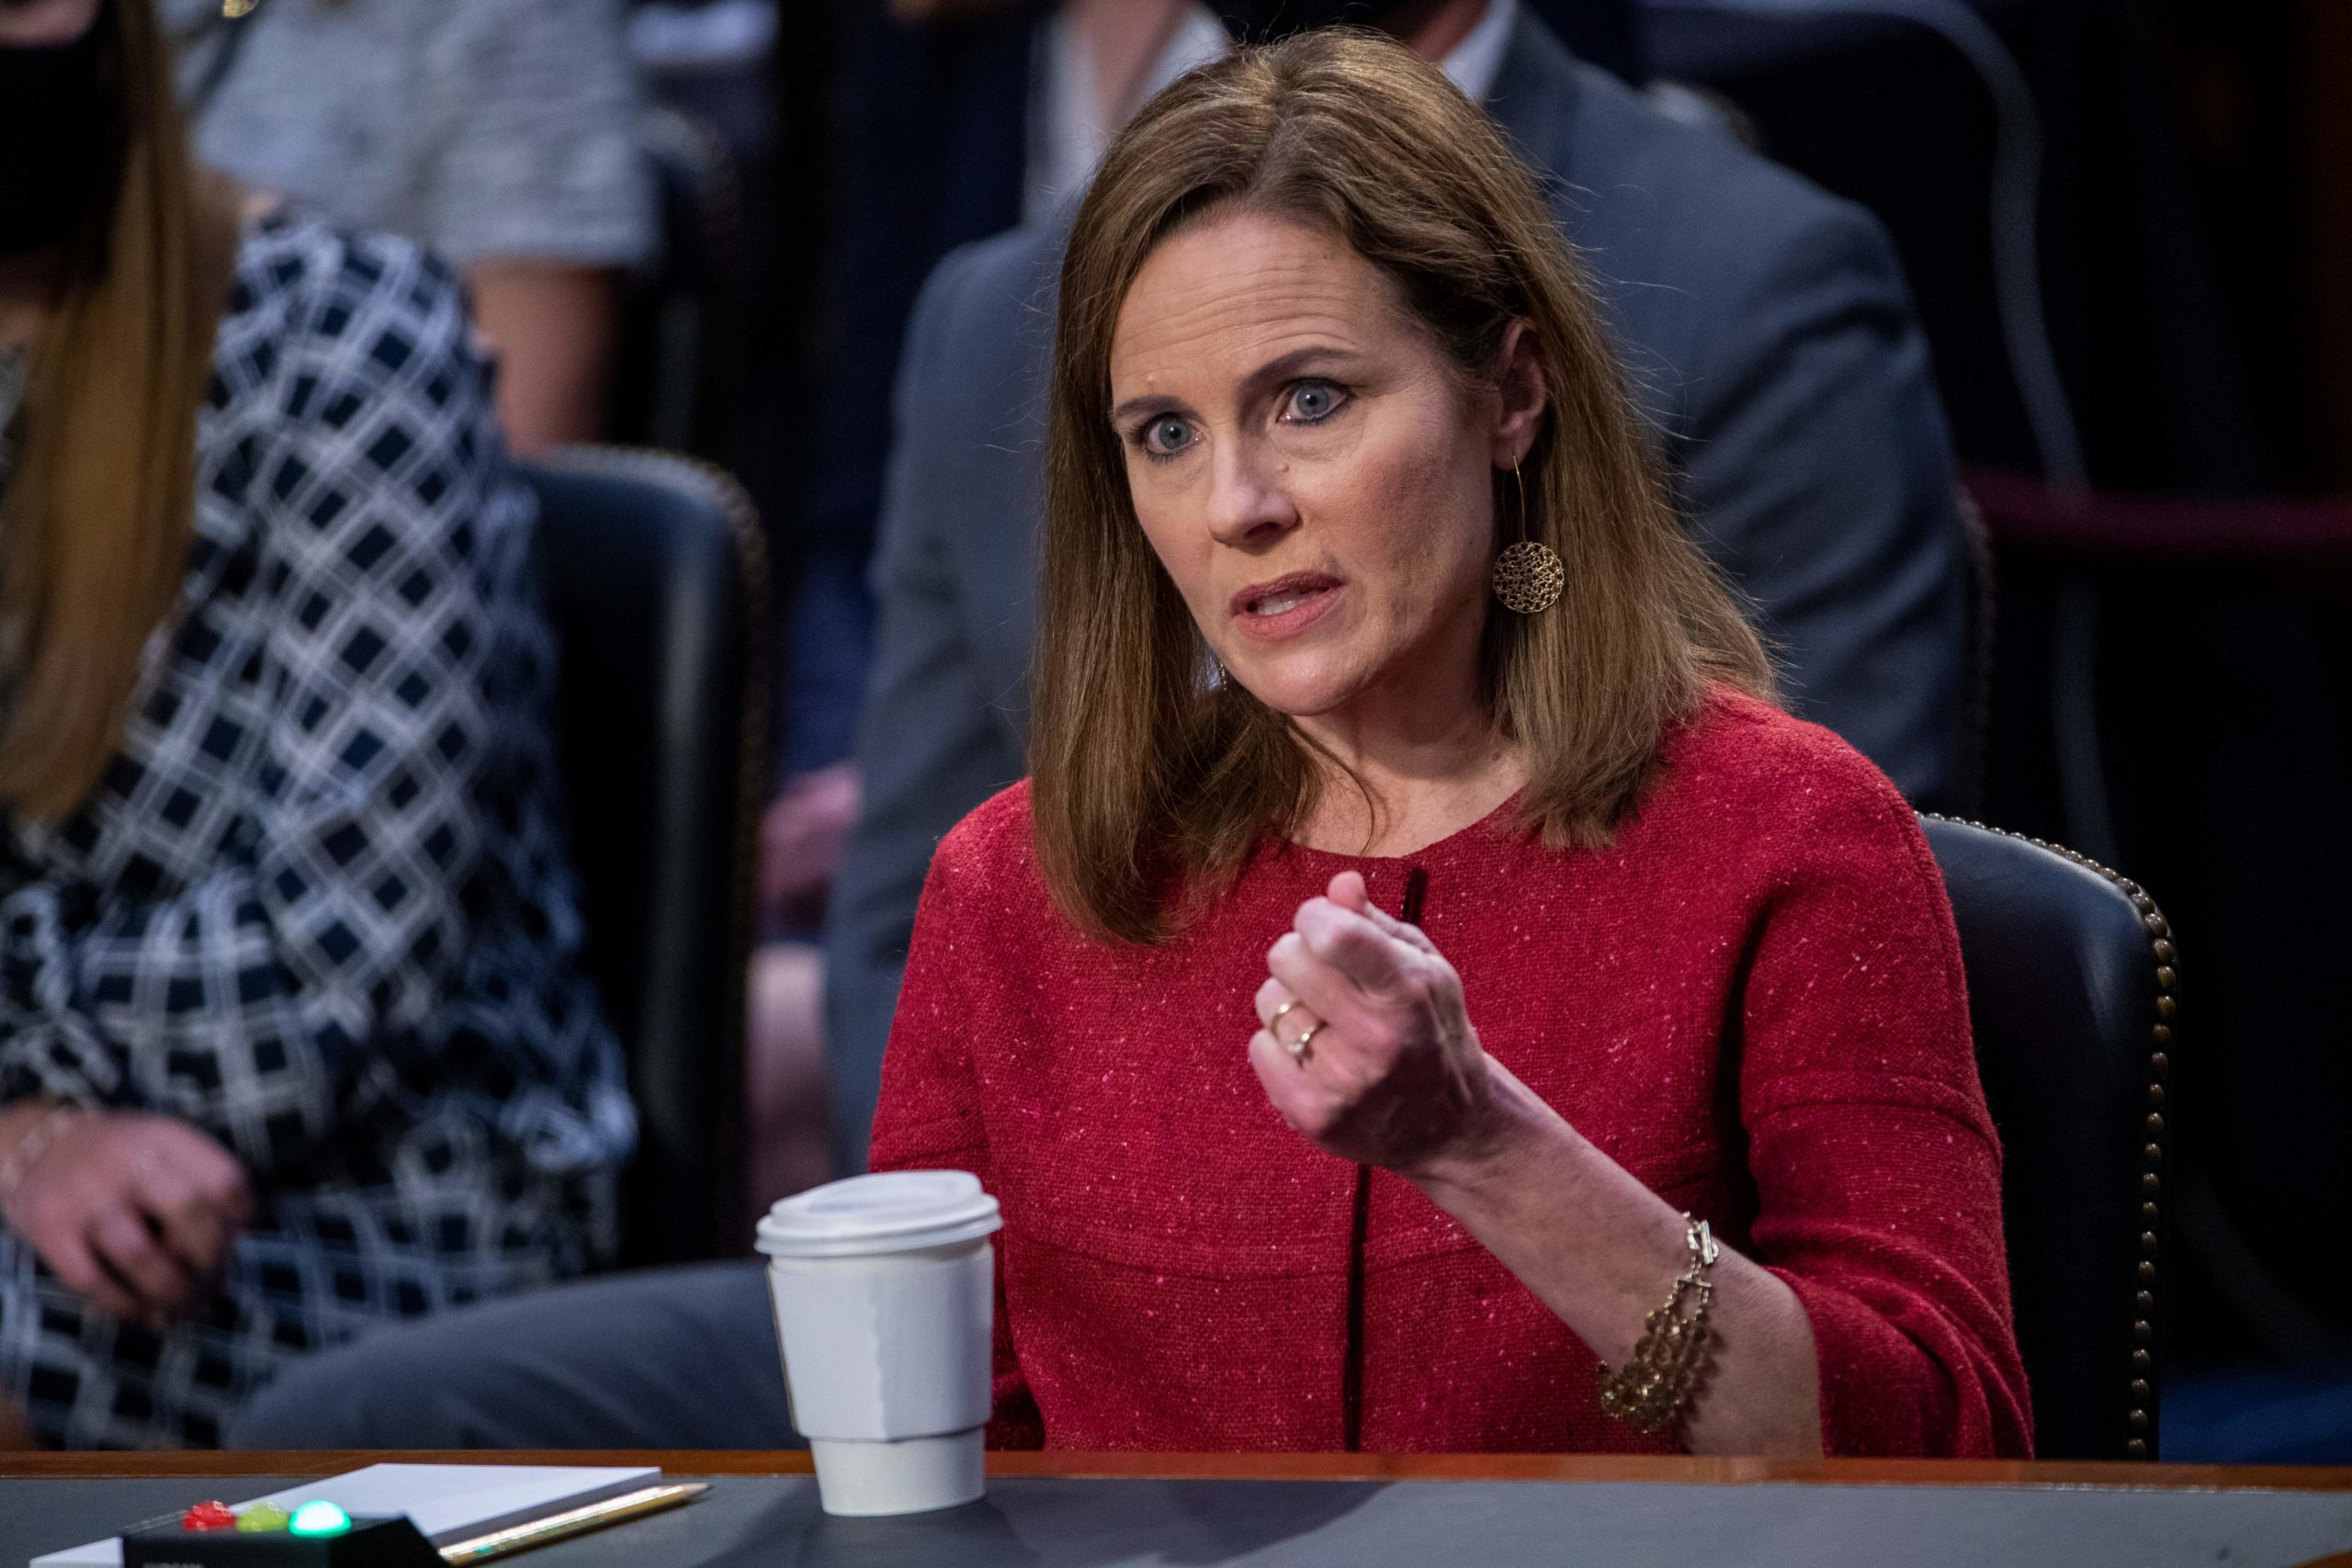 Supreme Court nominee Judge Amy Coney Barrett speaks during her confirmation hearing before the Senate Judiciary Committee on Capitol Hill in Washington, DC